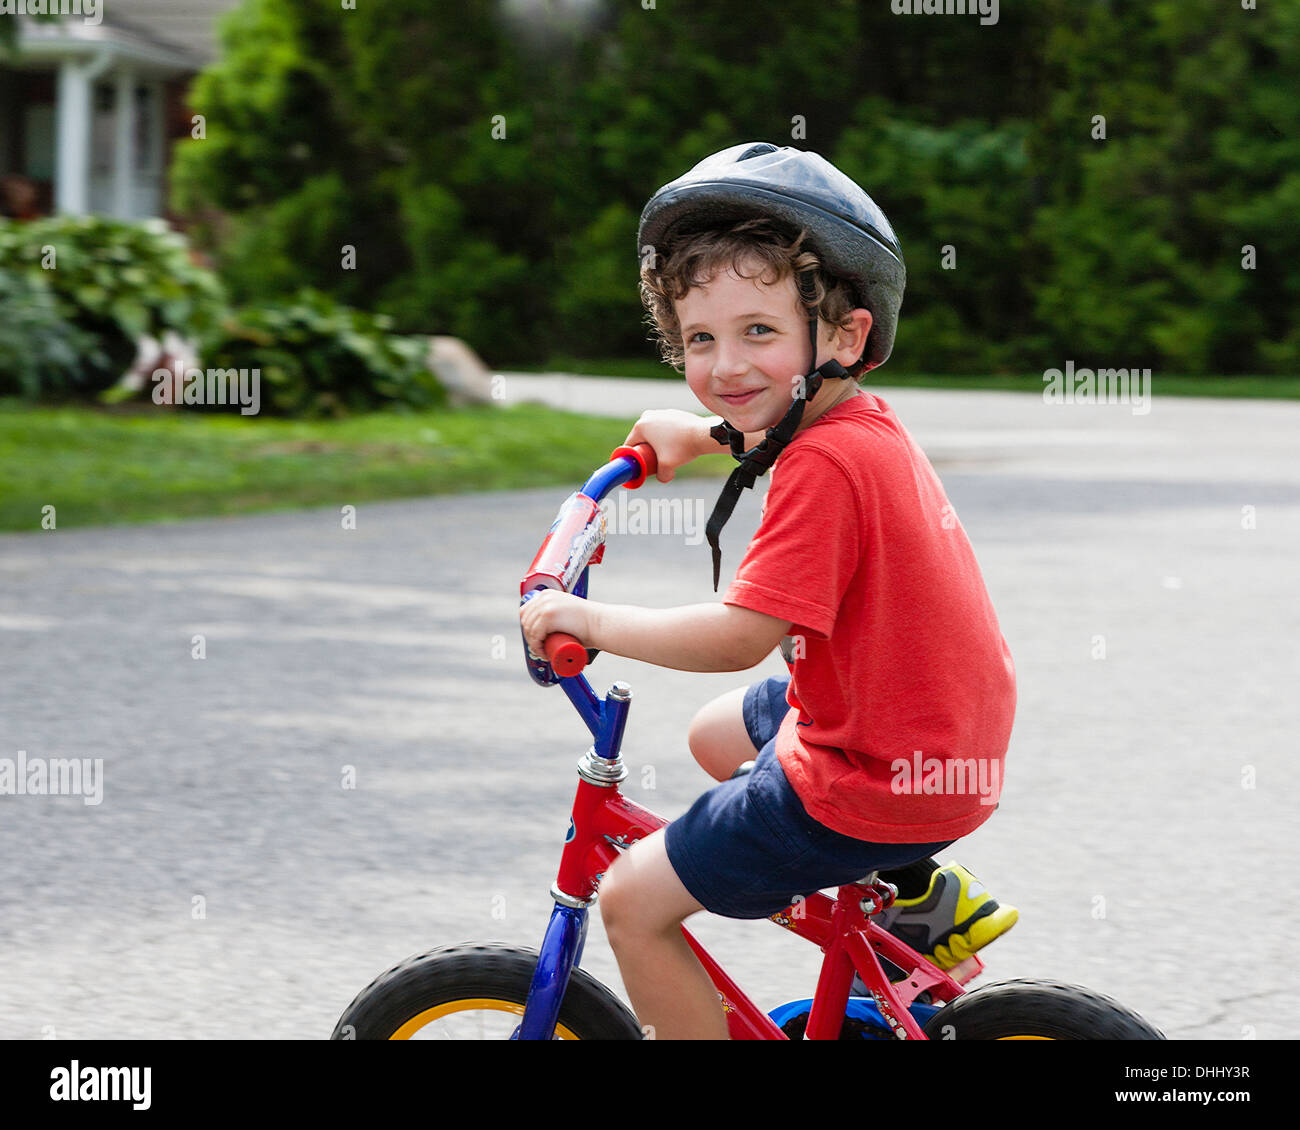 Portrait of young boy riding bicycle on driveway - Stock Image